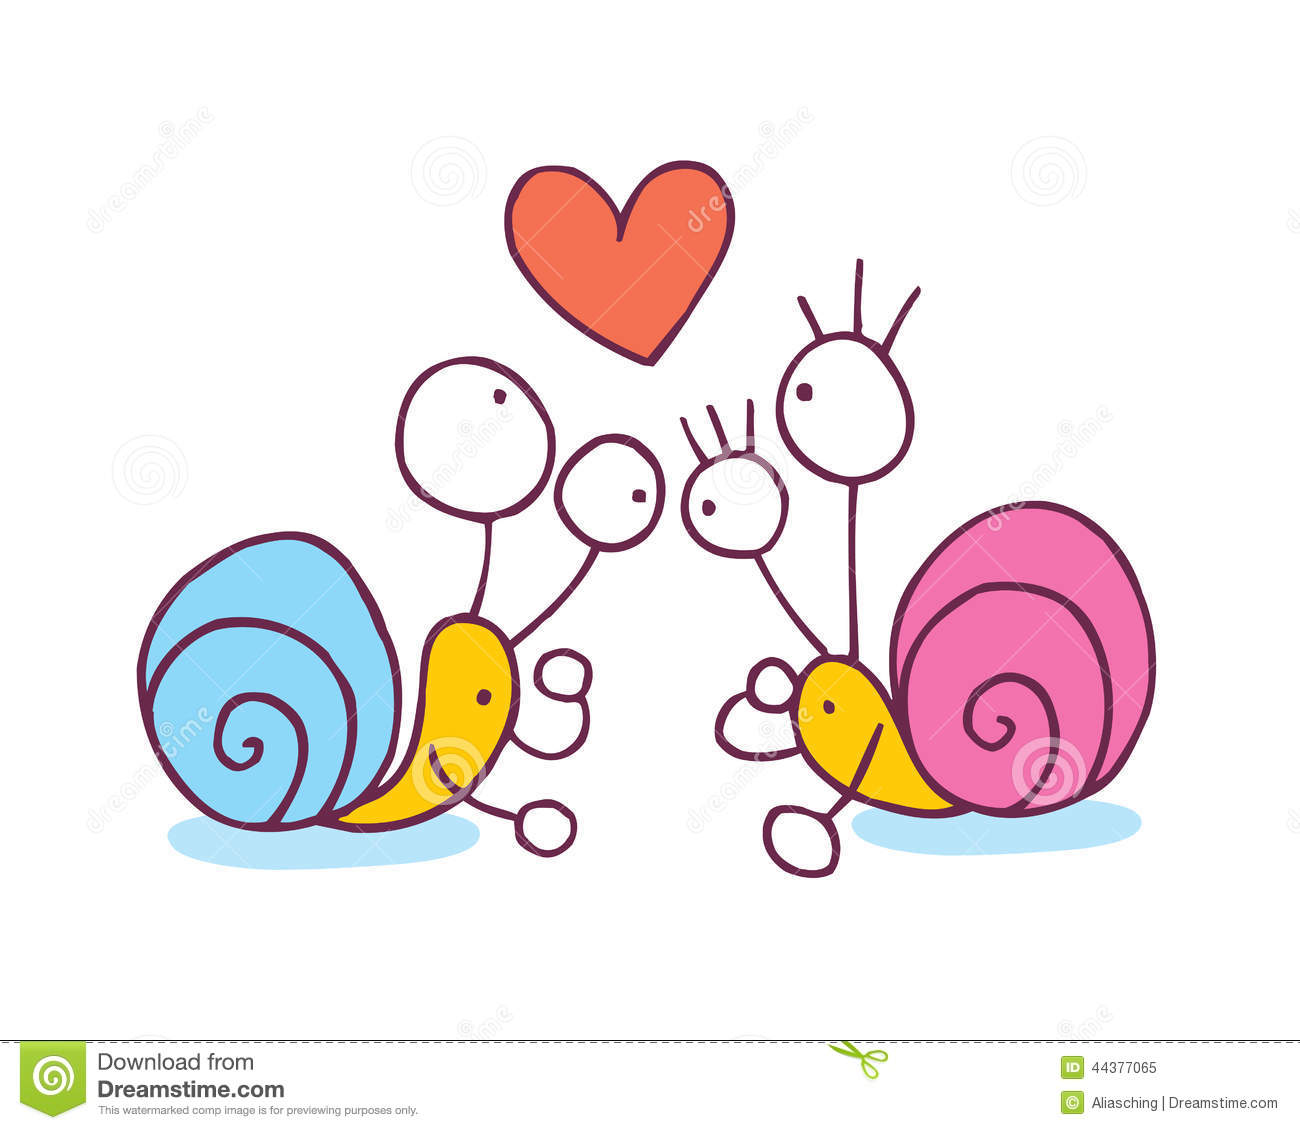 Cartoon Characters Love : Snails in love cartoon illustration stock vector image